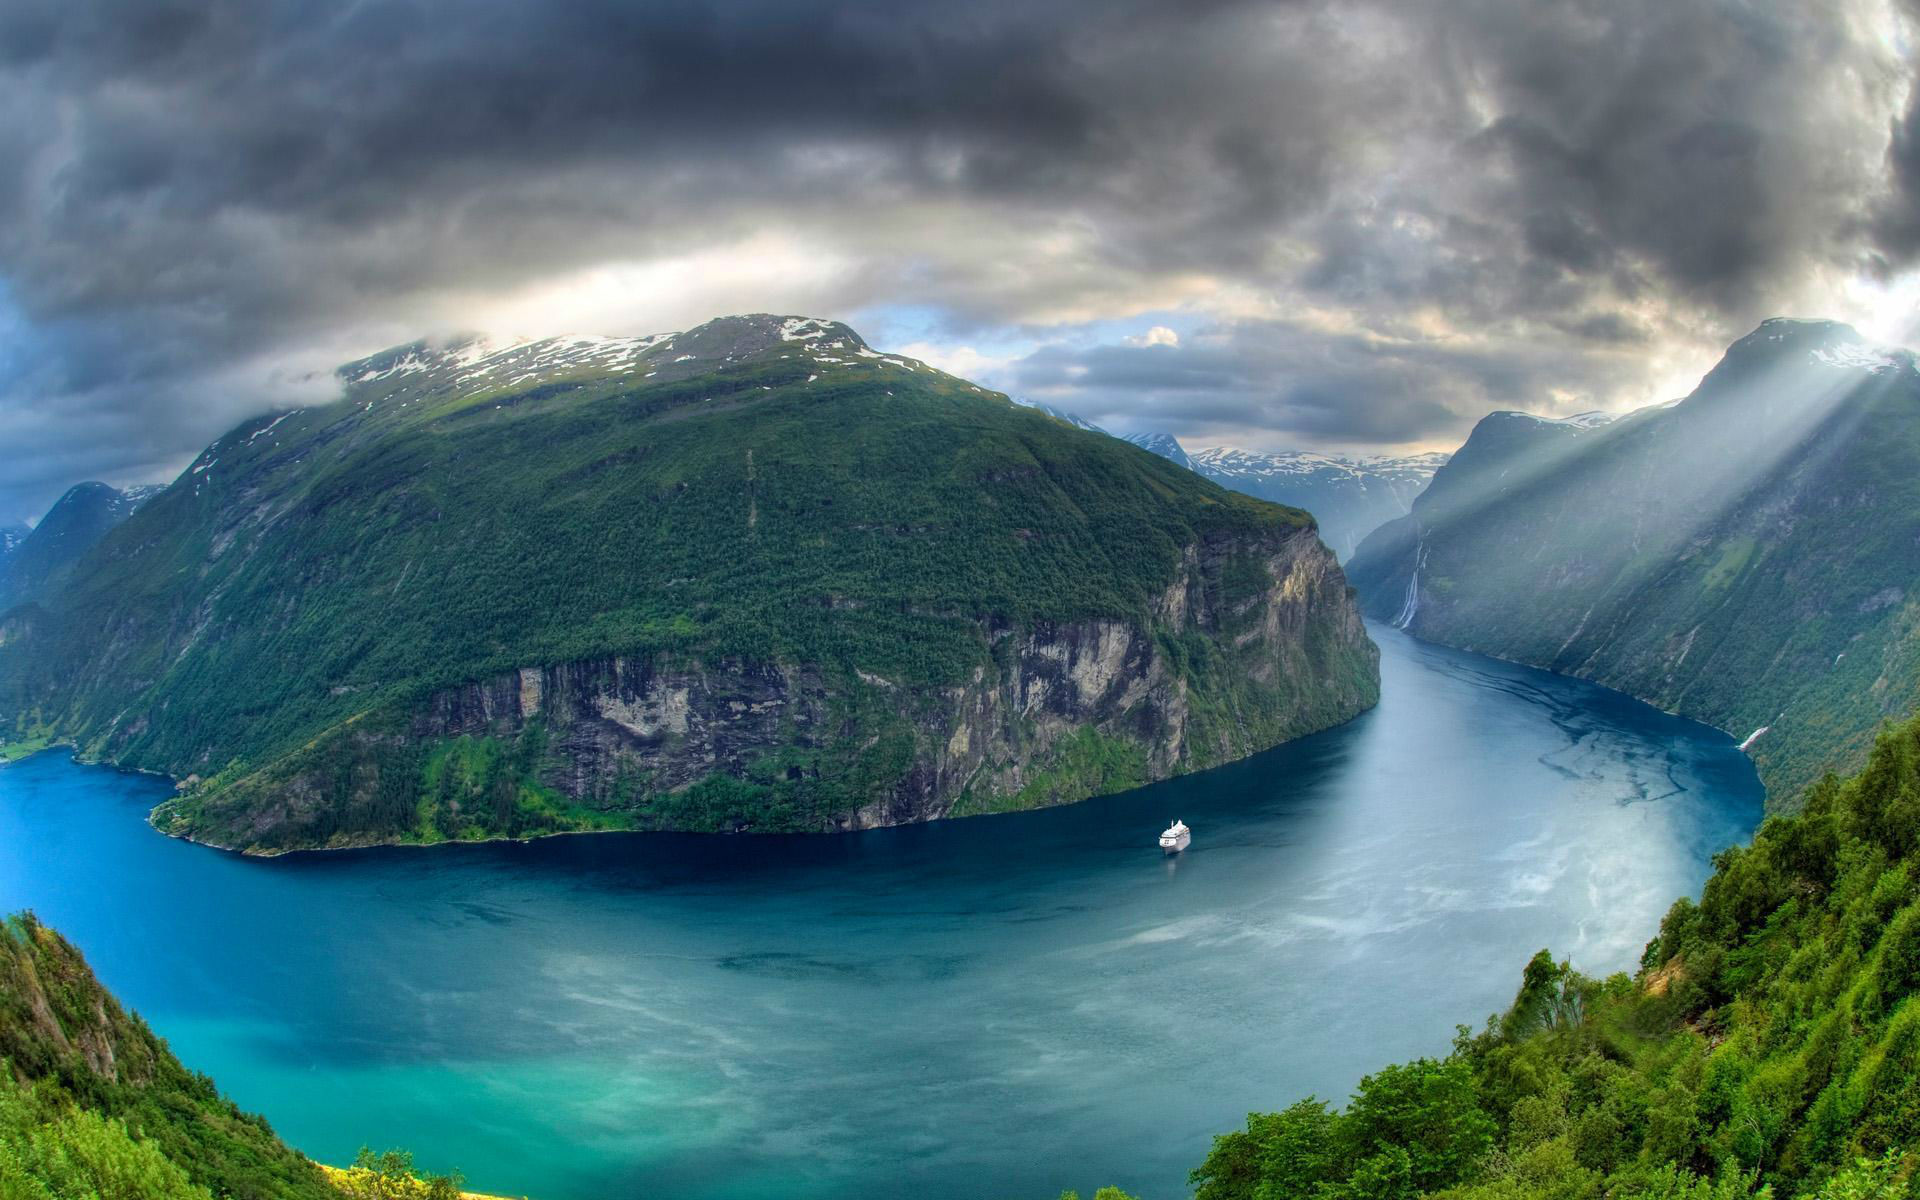 HQ Geirangerfjord Wallpapers | File 339.07Kb